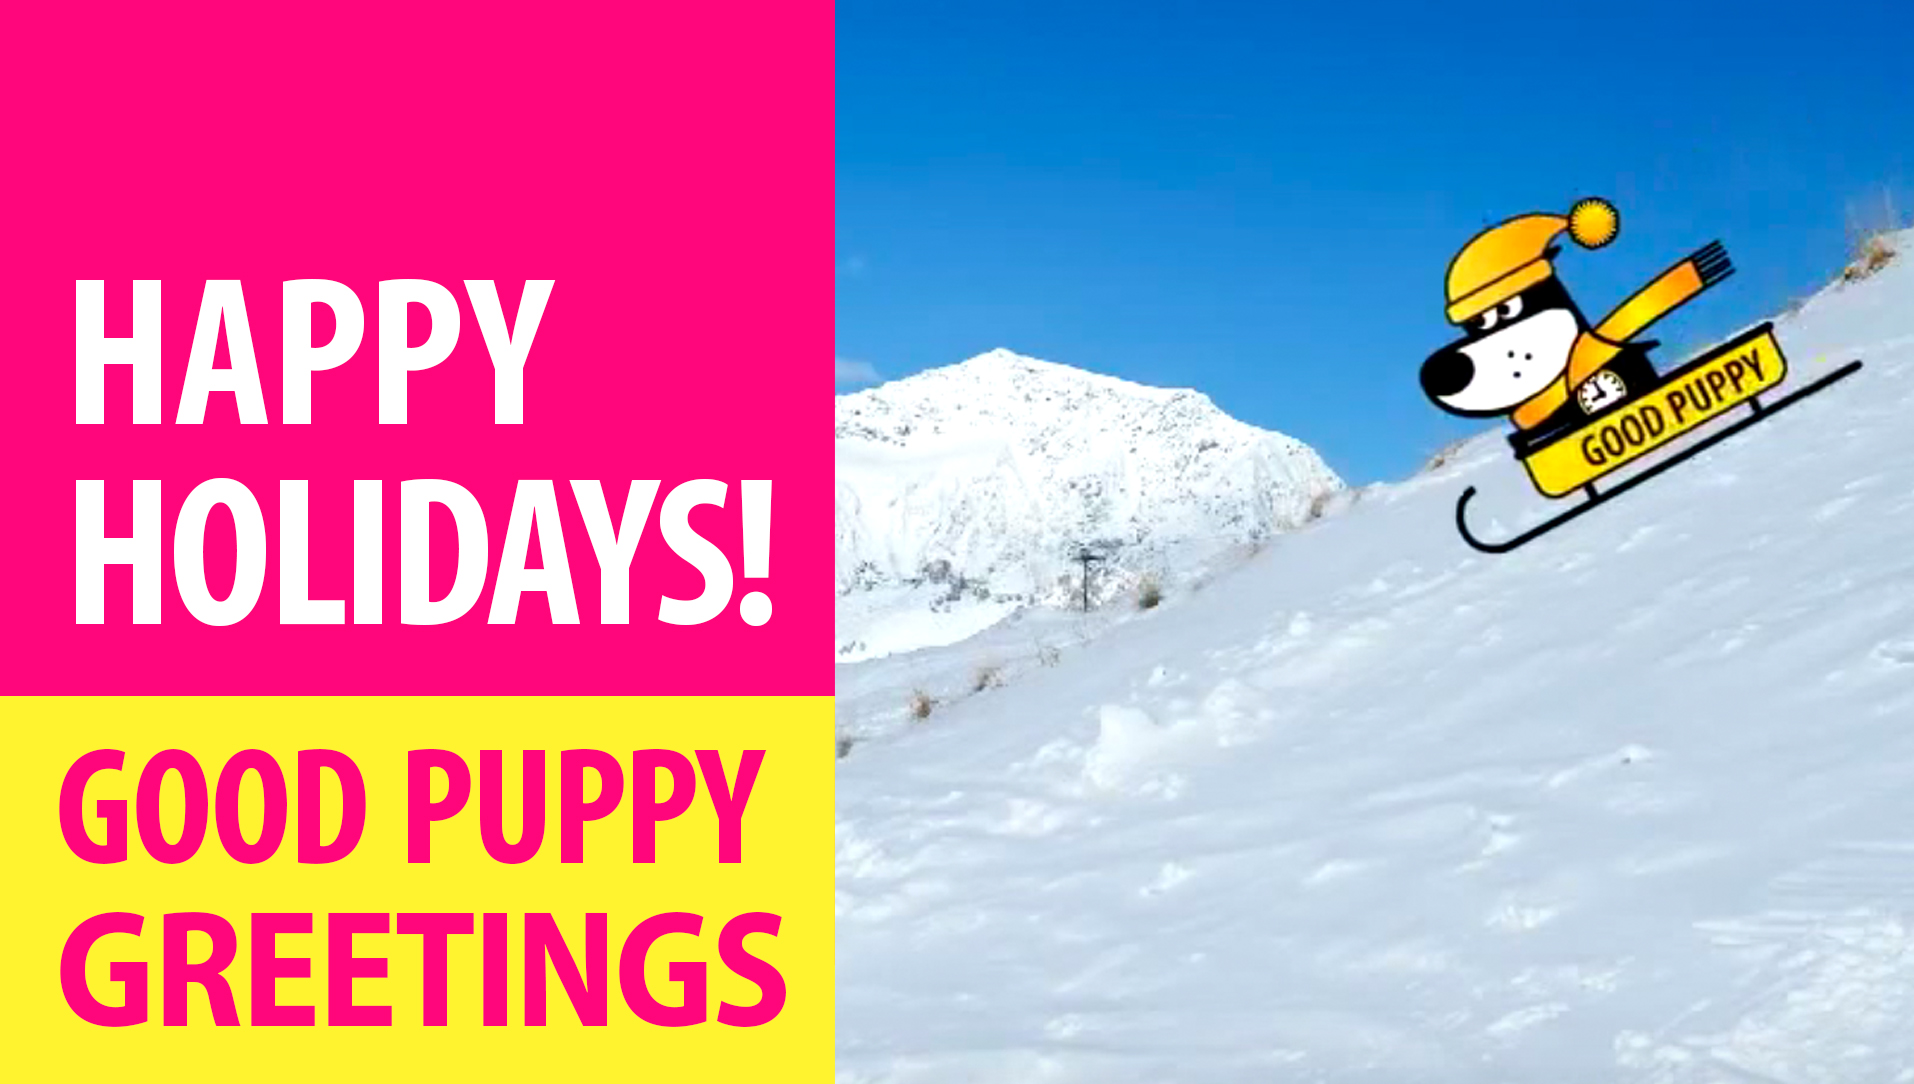 Happy Holidays! Animated Greeting Cards - Free E-Cards By GOOD PUPPY